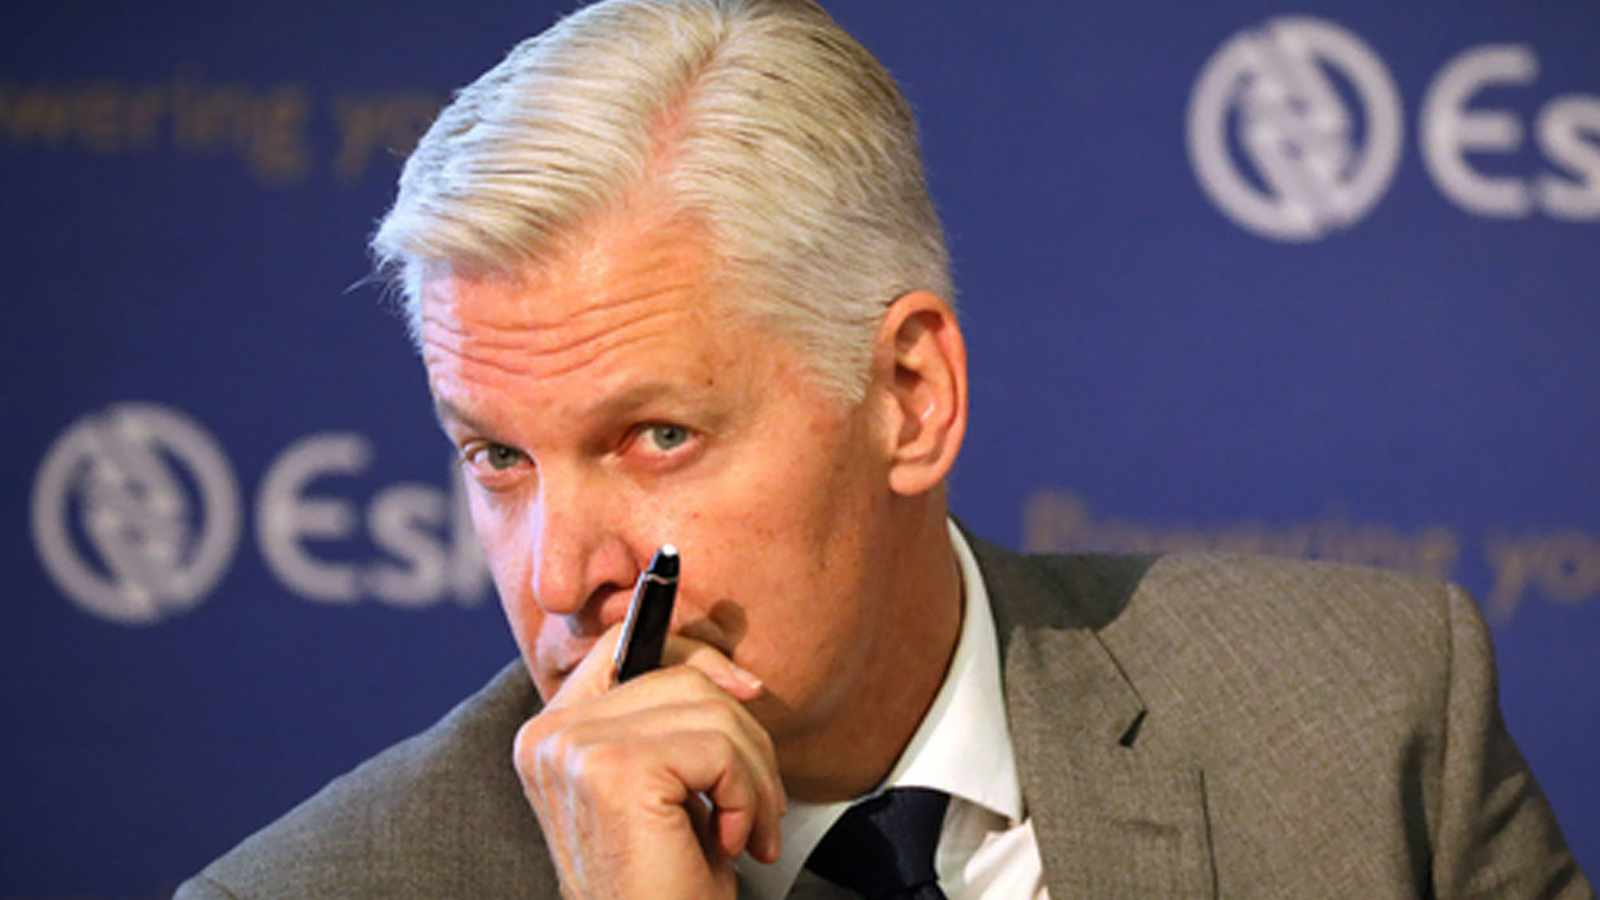 Cape Town 13-9-2021 Embattled Eskom Group Chief Executive (GCE) André de Ruyter. File picture: Sumaya Hisham/Reuters